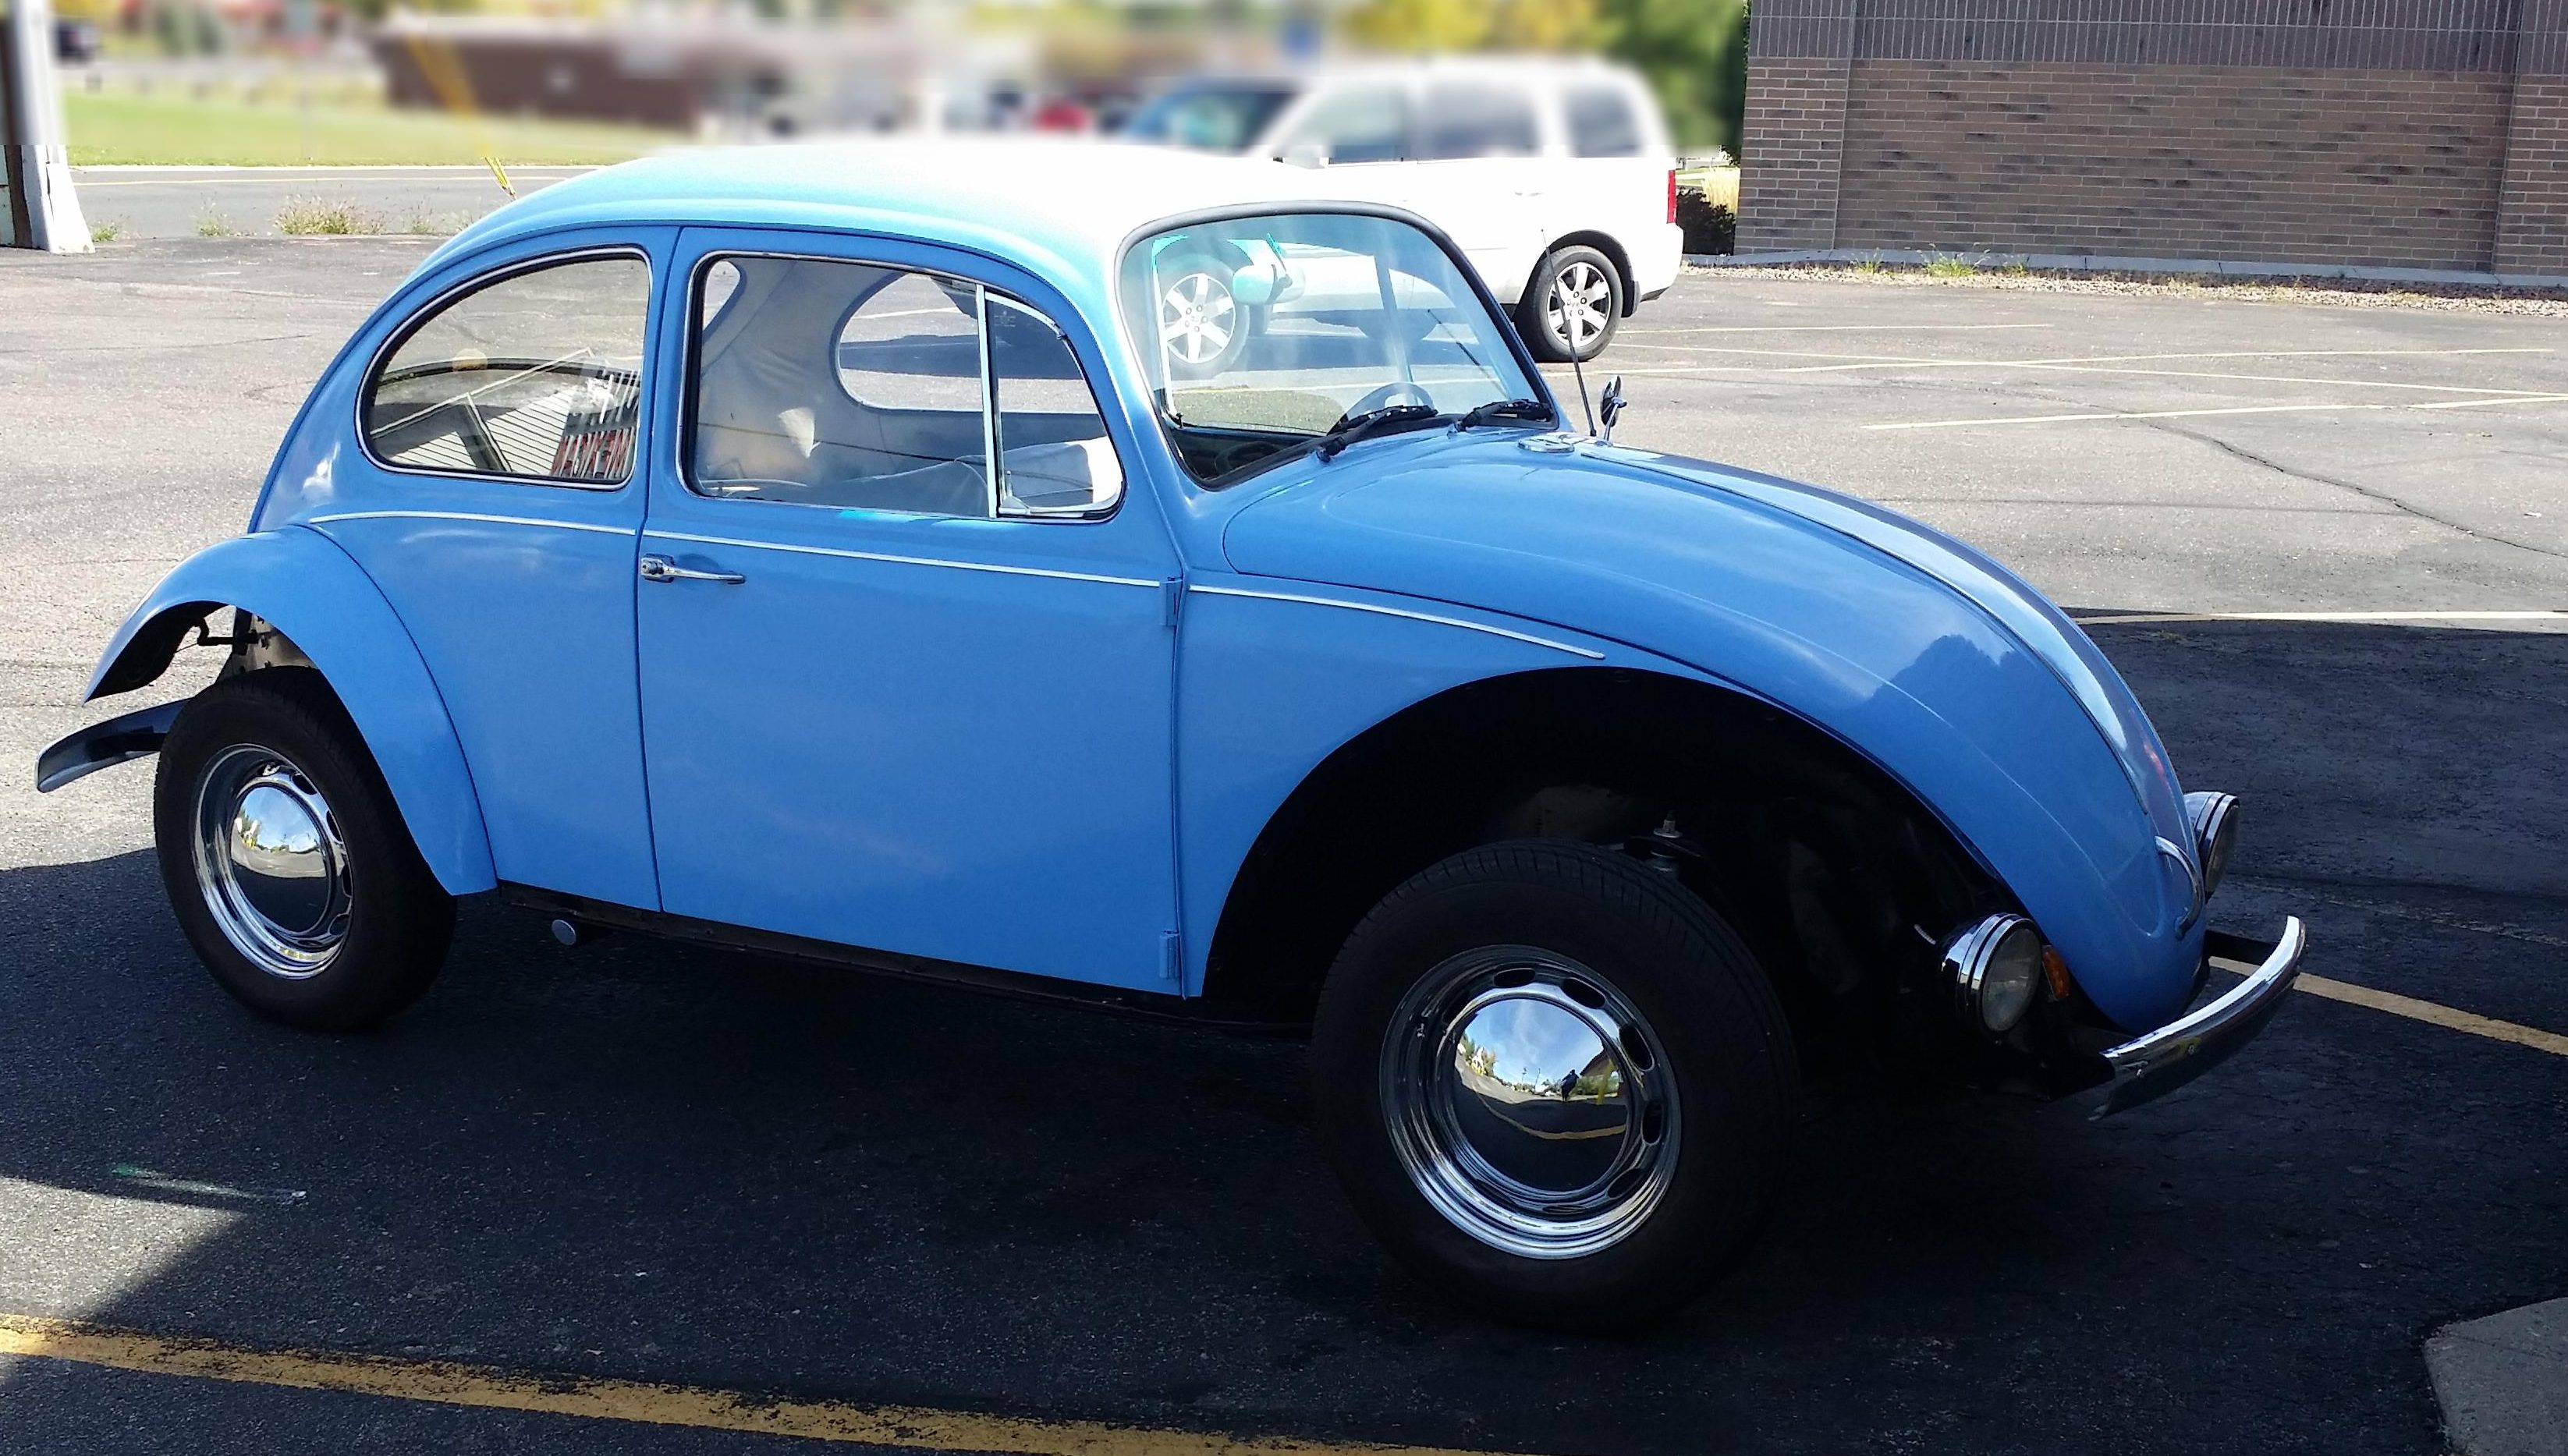 1976 Volkswagen Beetle Donated to Colorado Public Radio